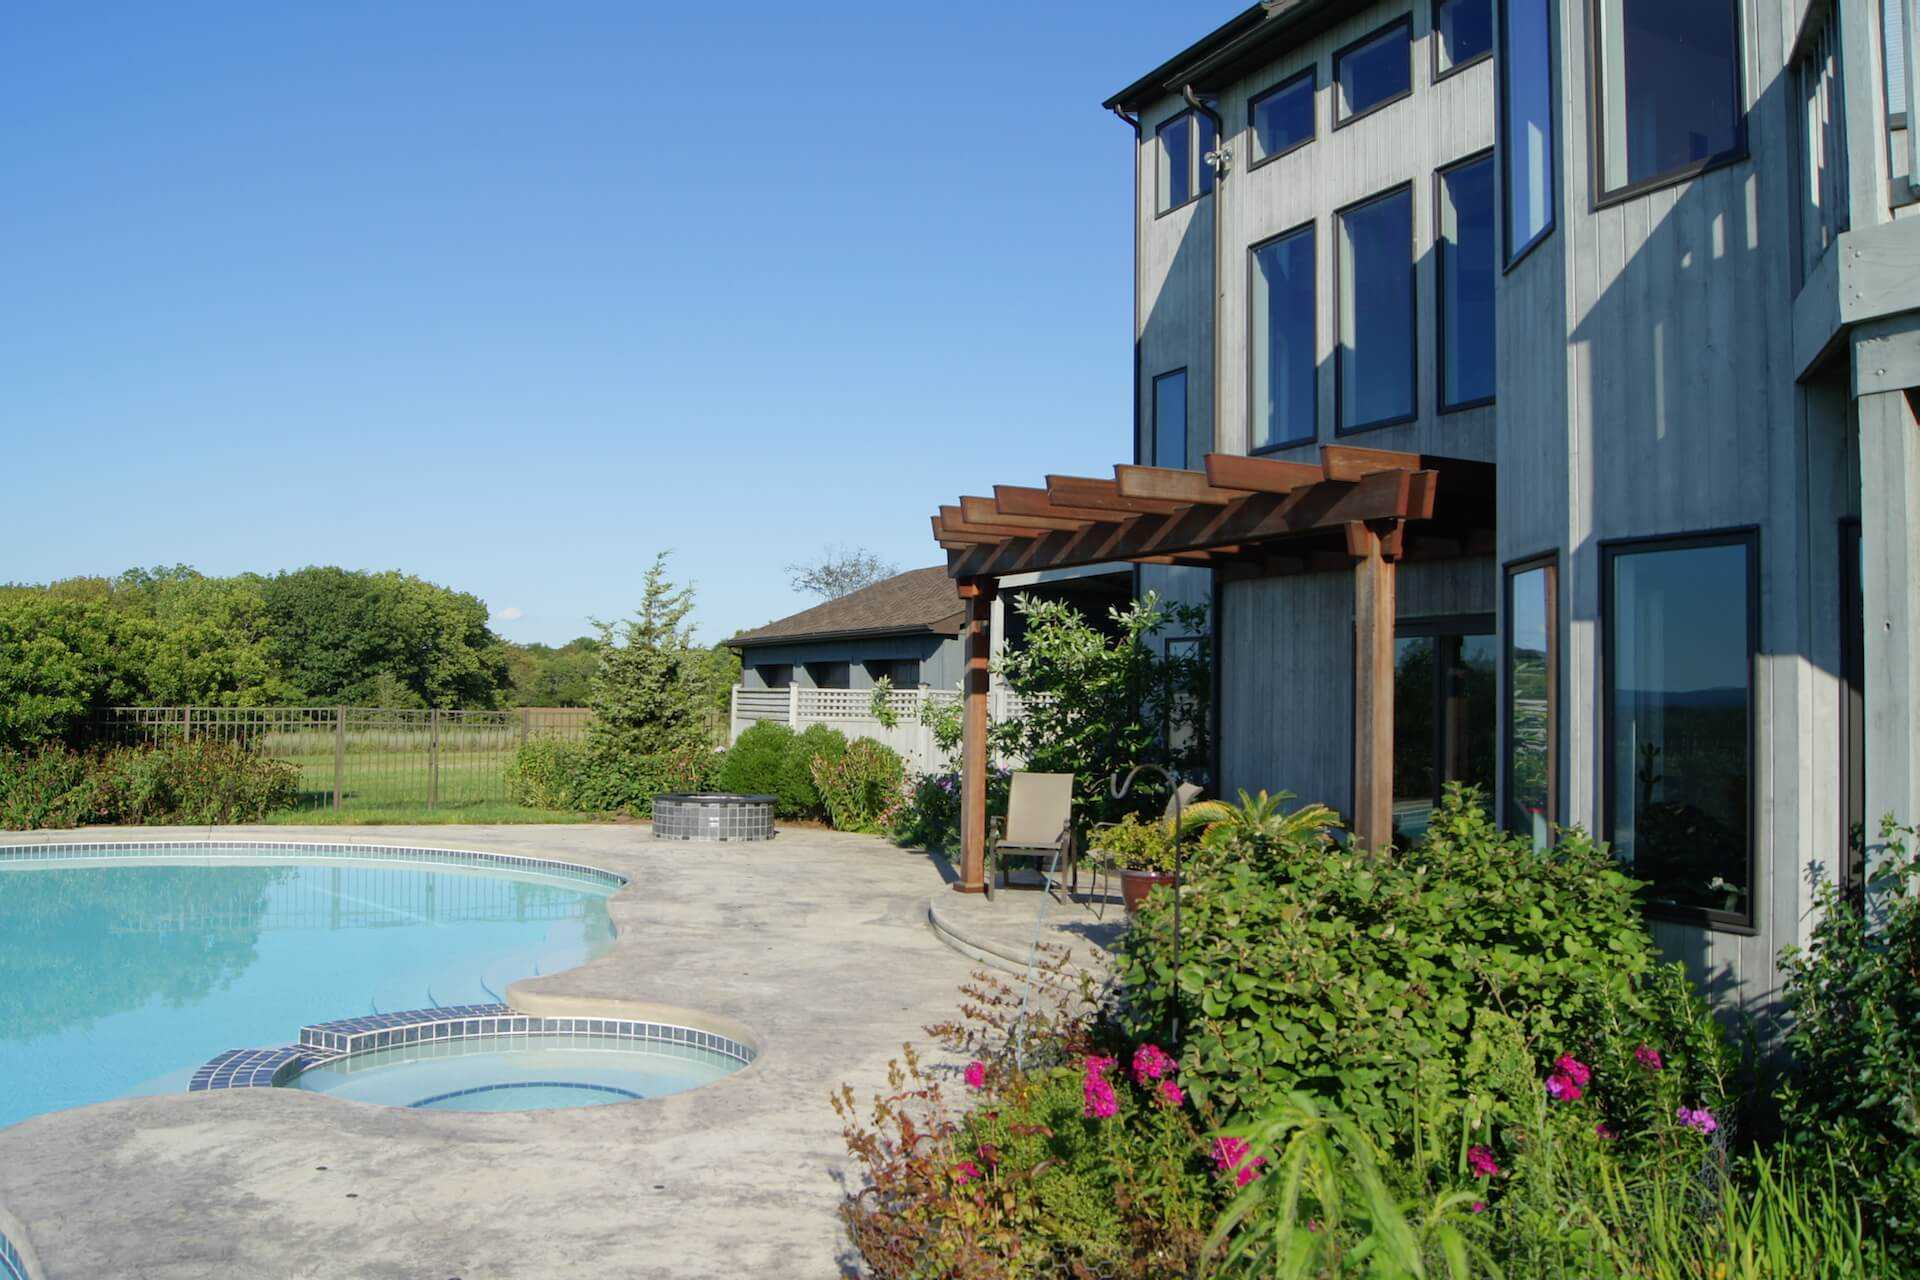 facing house  over flower planter to the right, and pool to the left